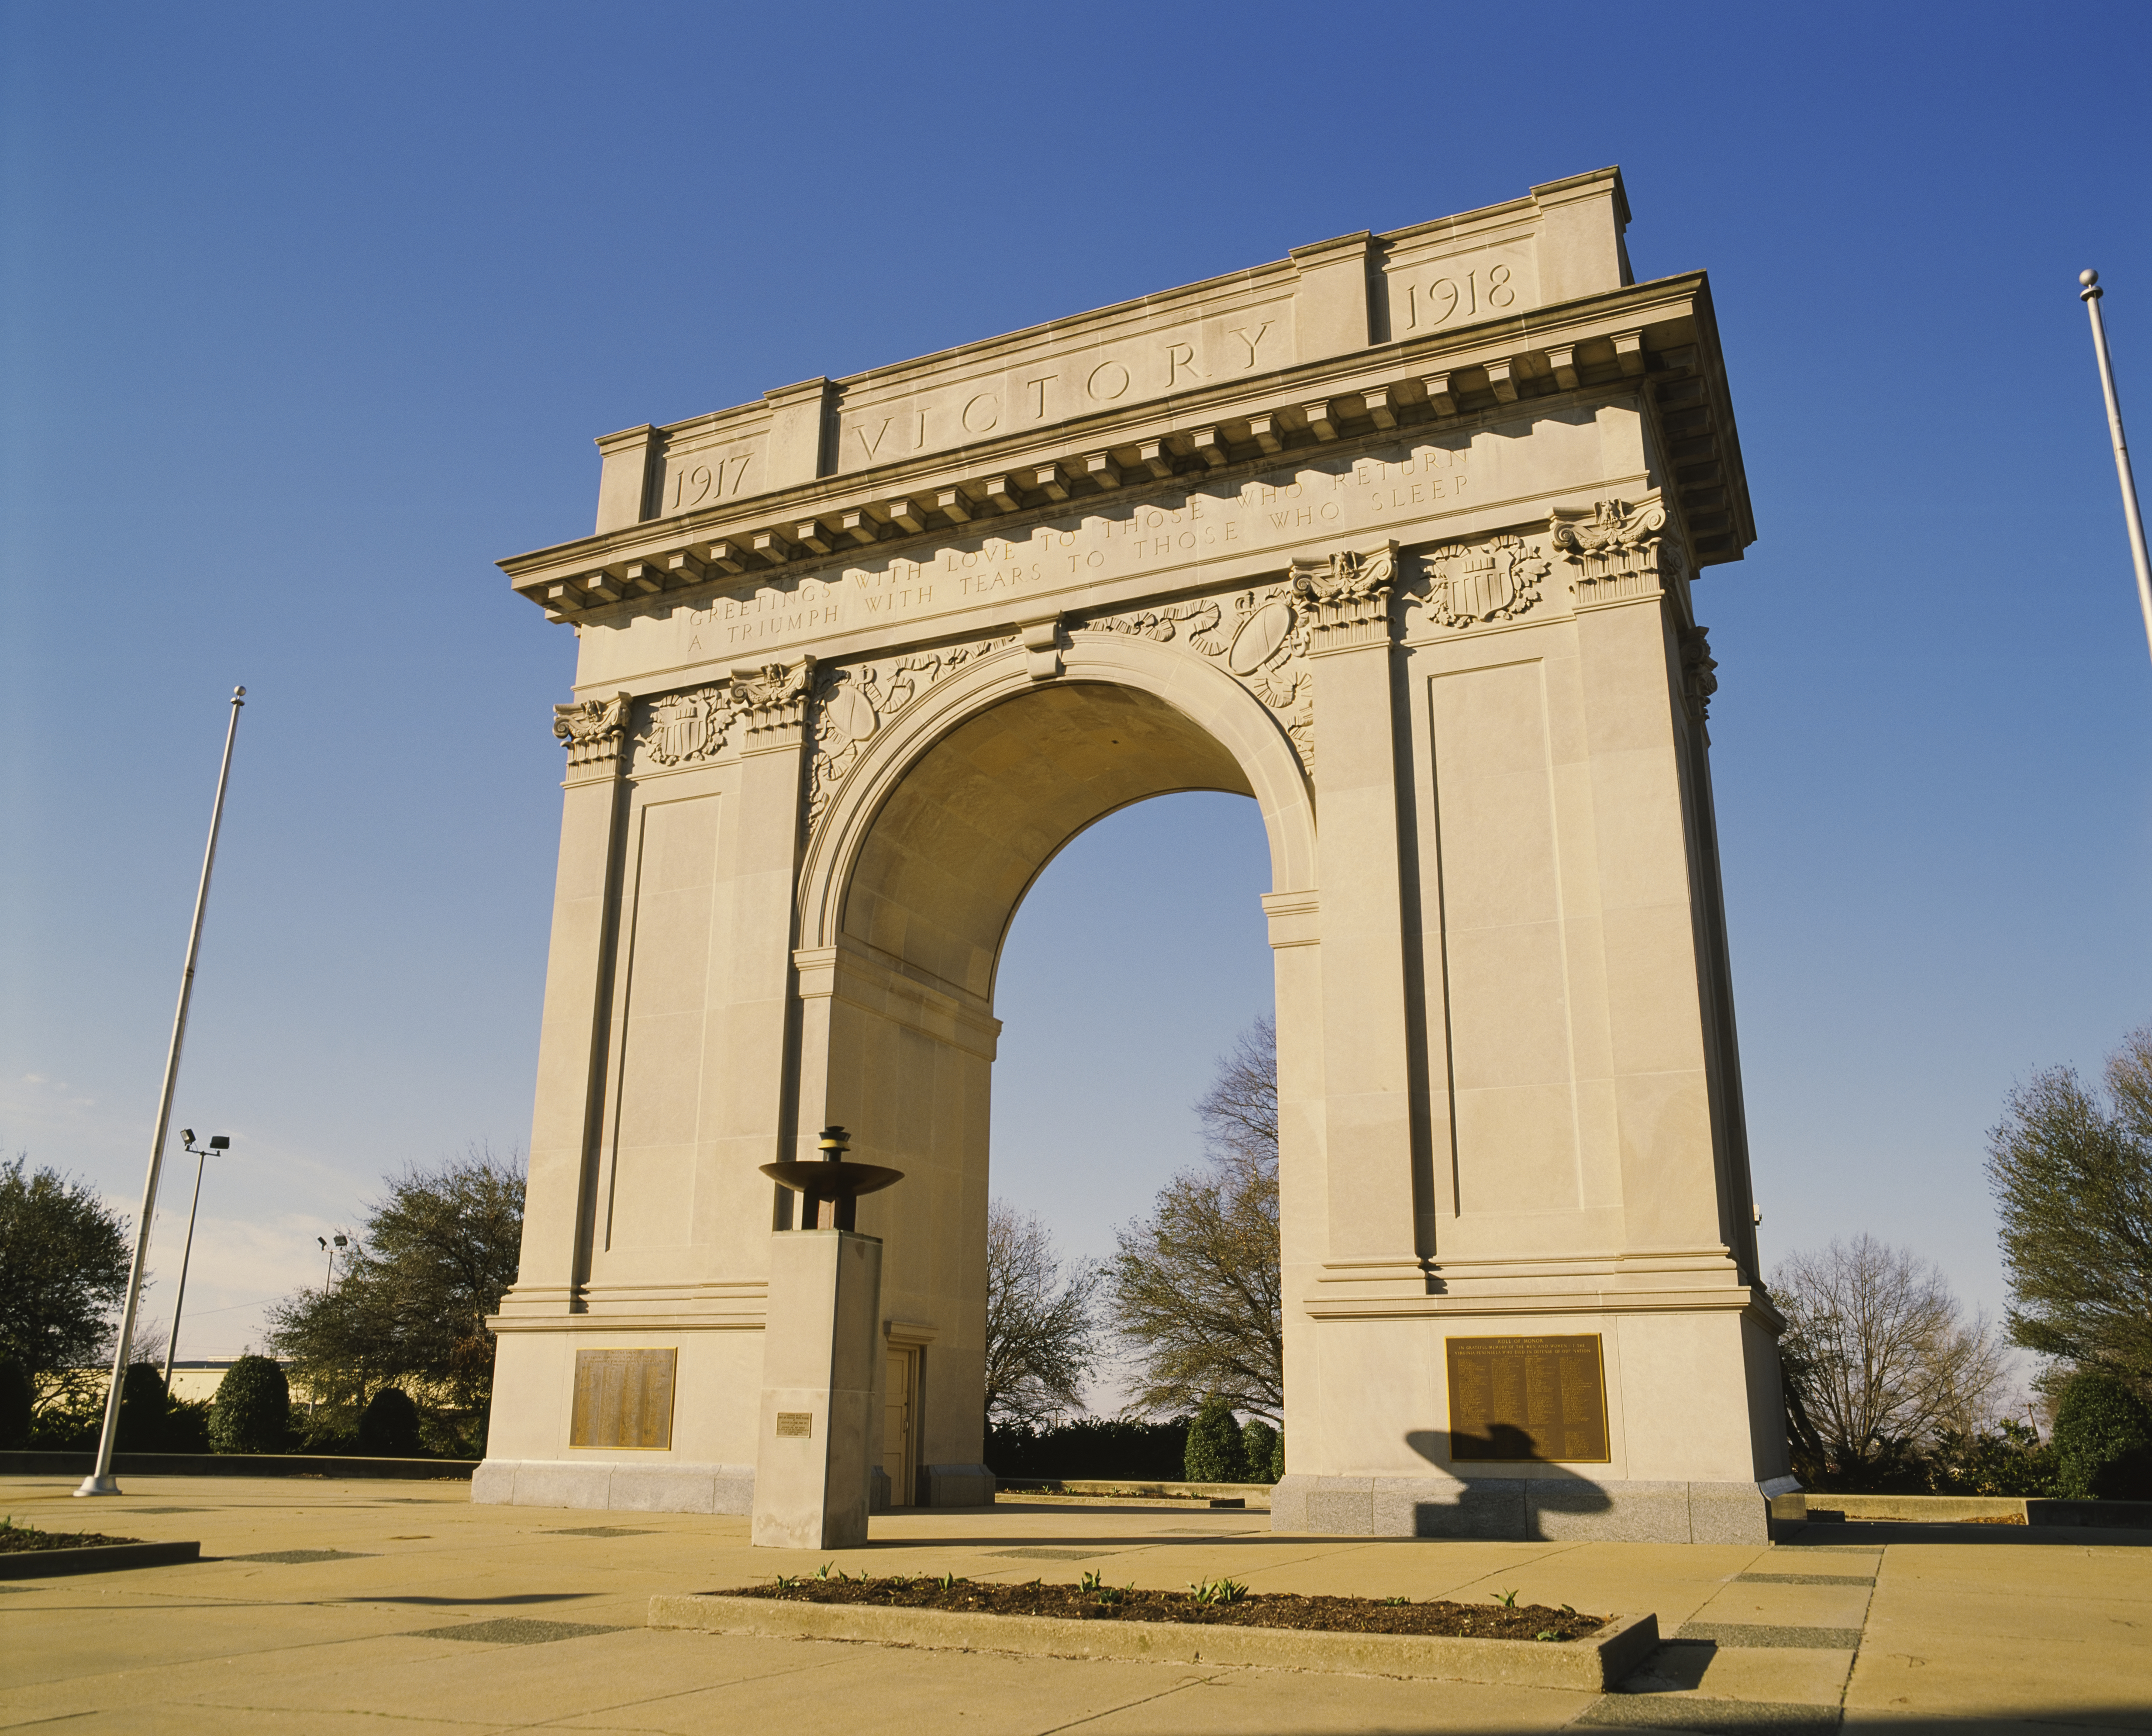 Low angle view of a triumphal arch, Newport News Victory Arch, Newport News, Virginia, USA